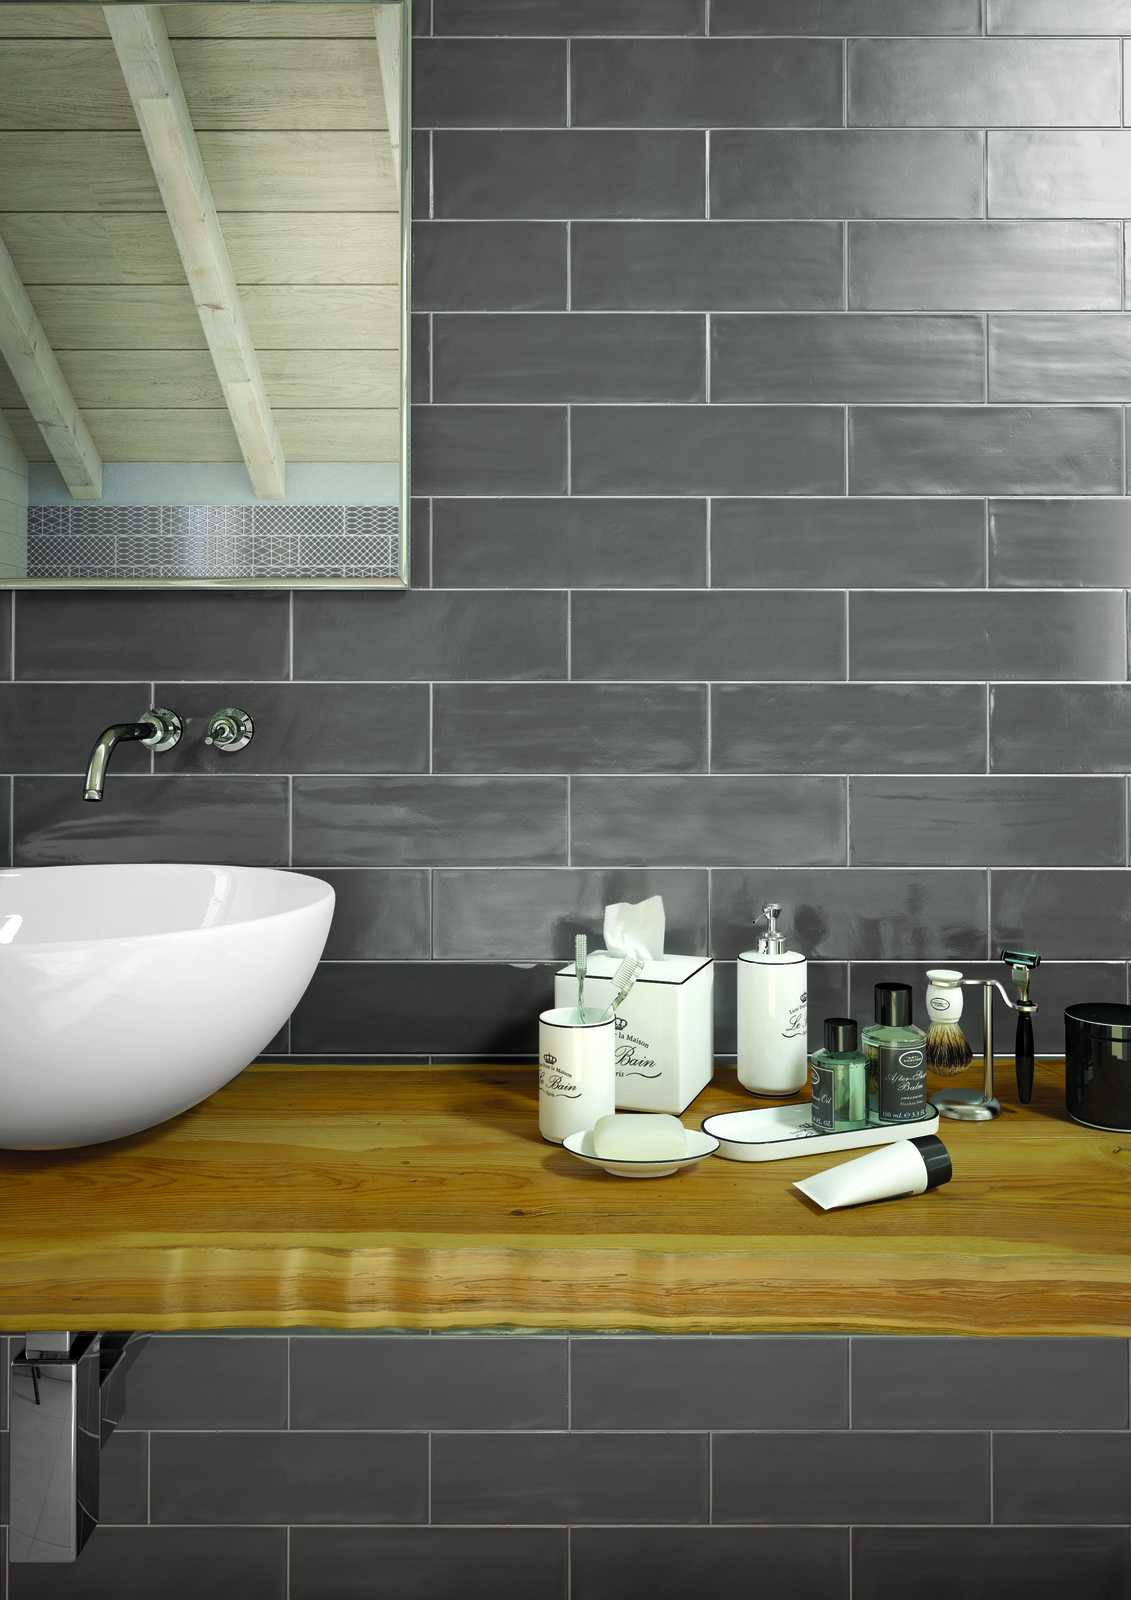 Brick glossy collection kitchen and bathroom wall tiles ragno brick glossy ceramic tiles ragno6417 dailygadgetfo Gallery